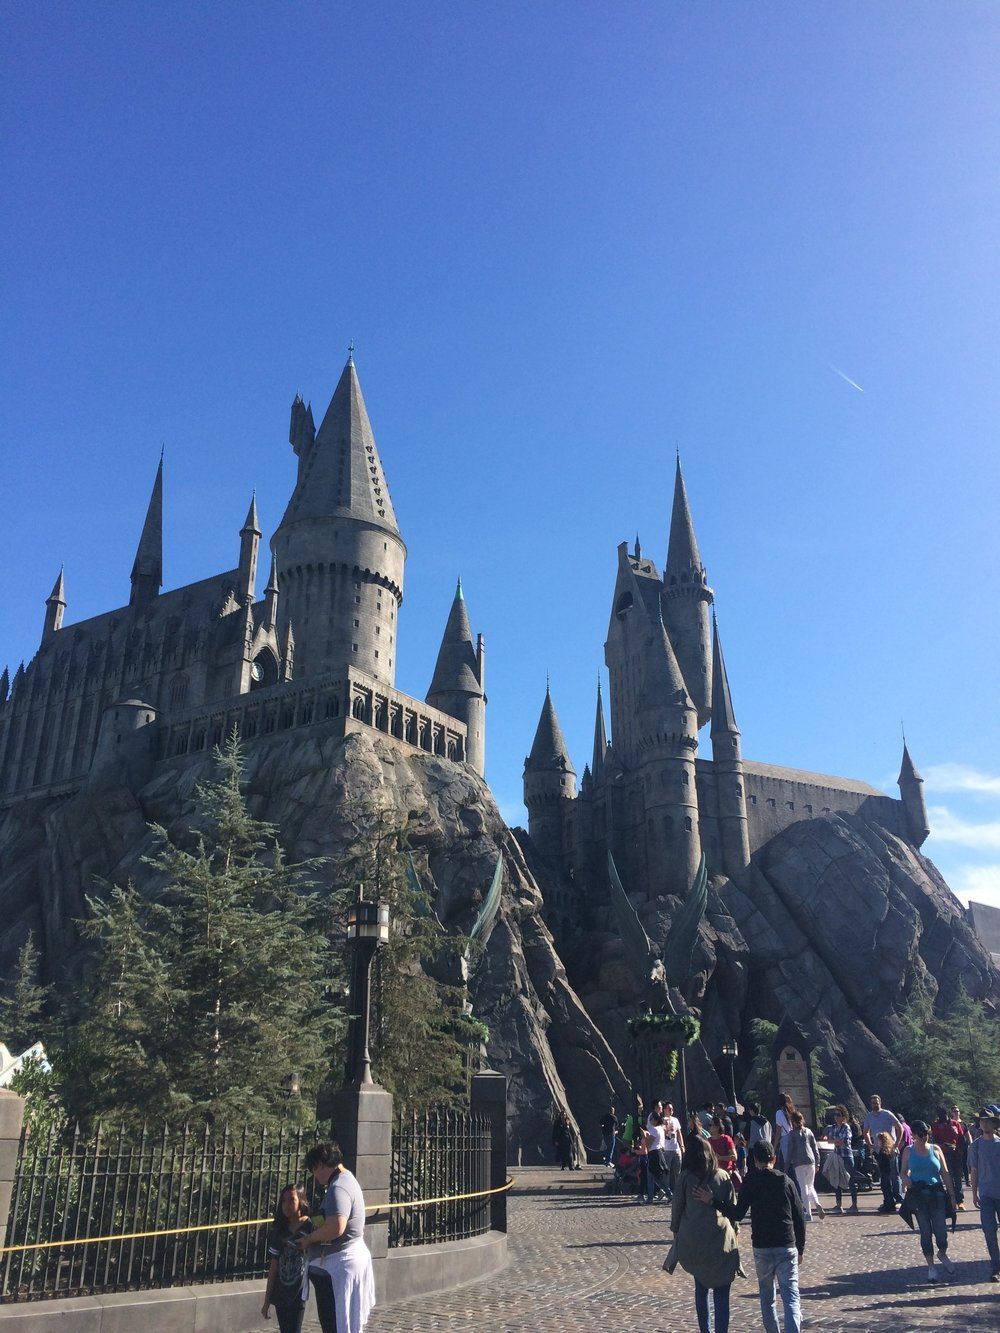 Hogwarts School of Witchcraft and Wizadry